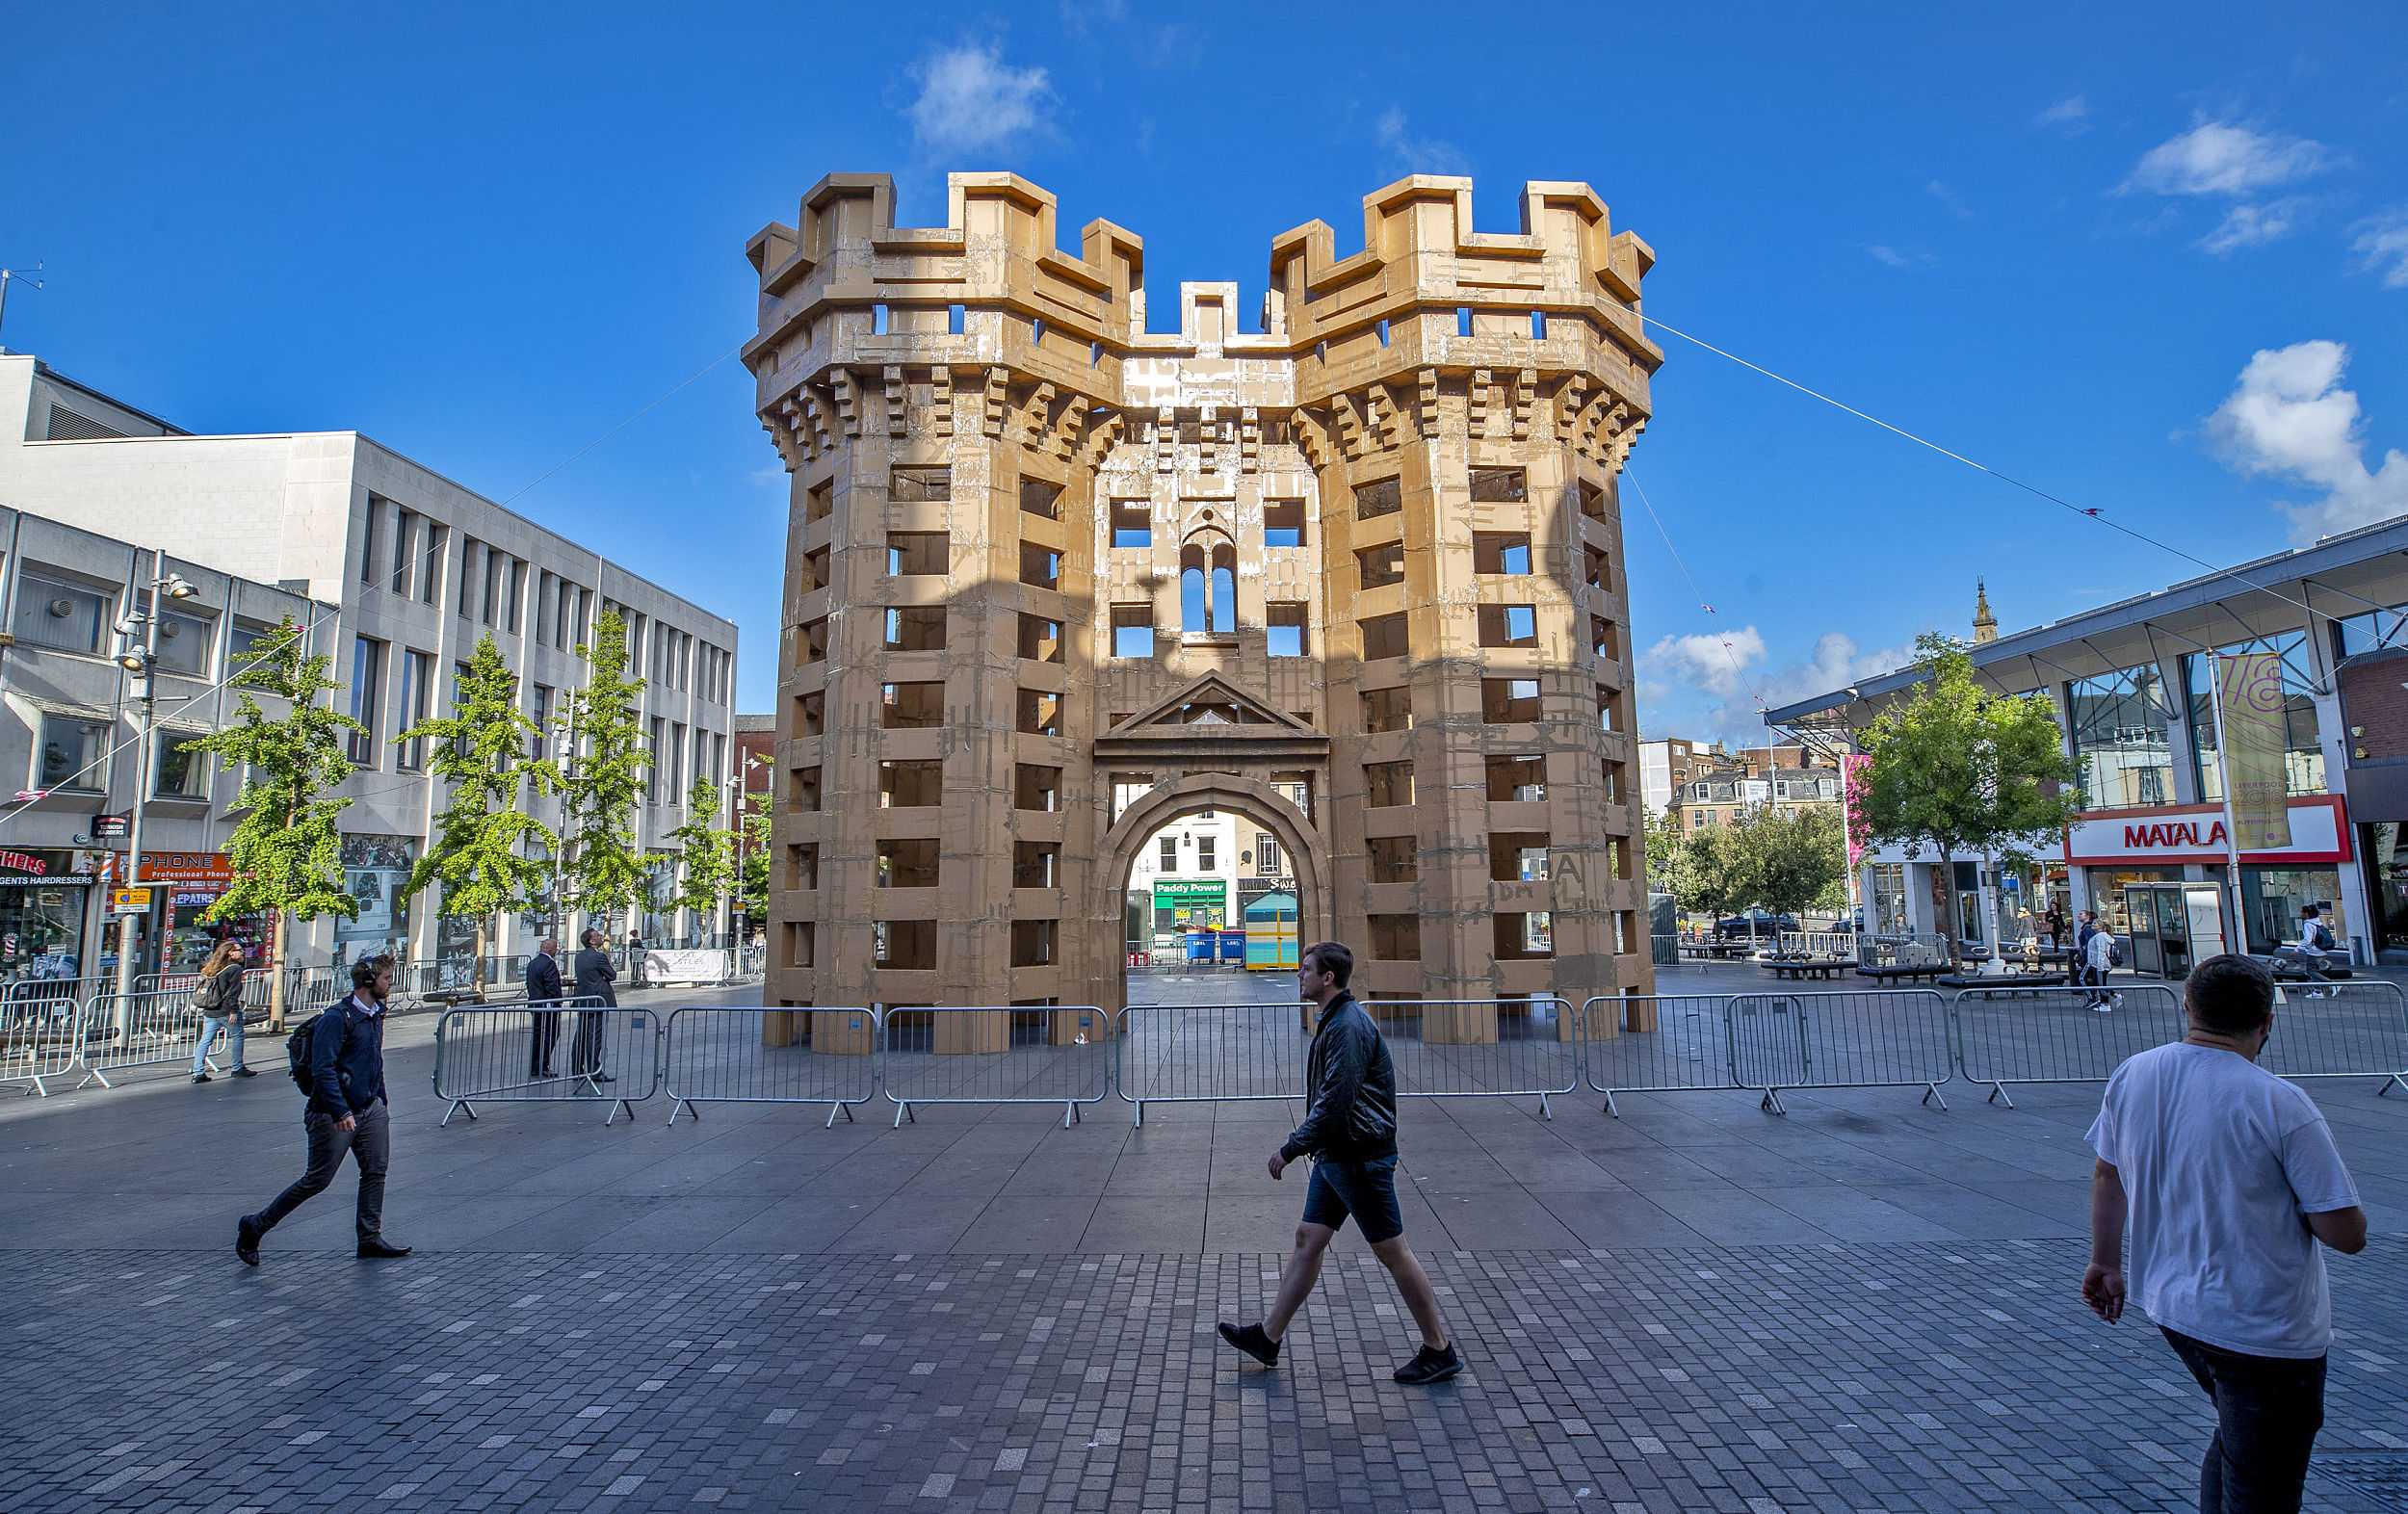 Giant cardboard castles appear in Liverpool, UK